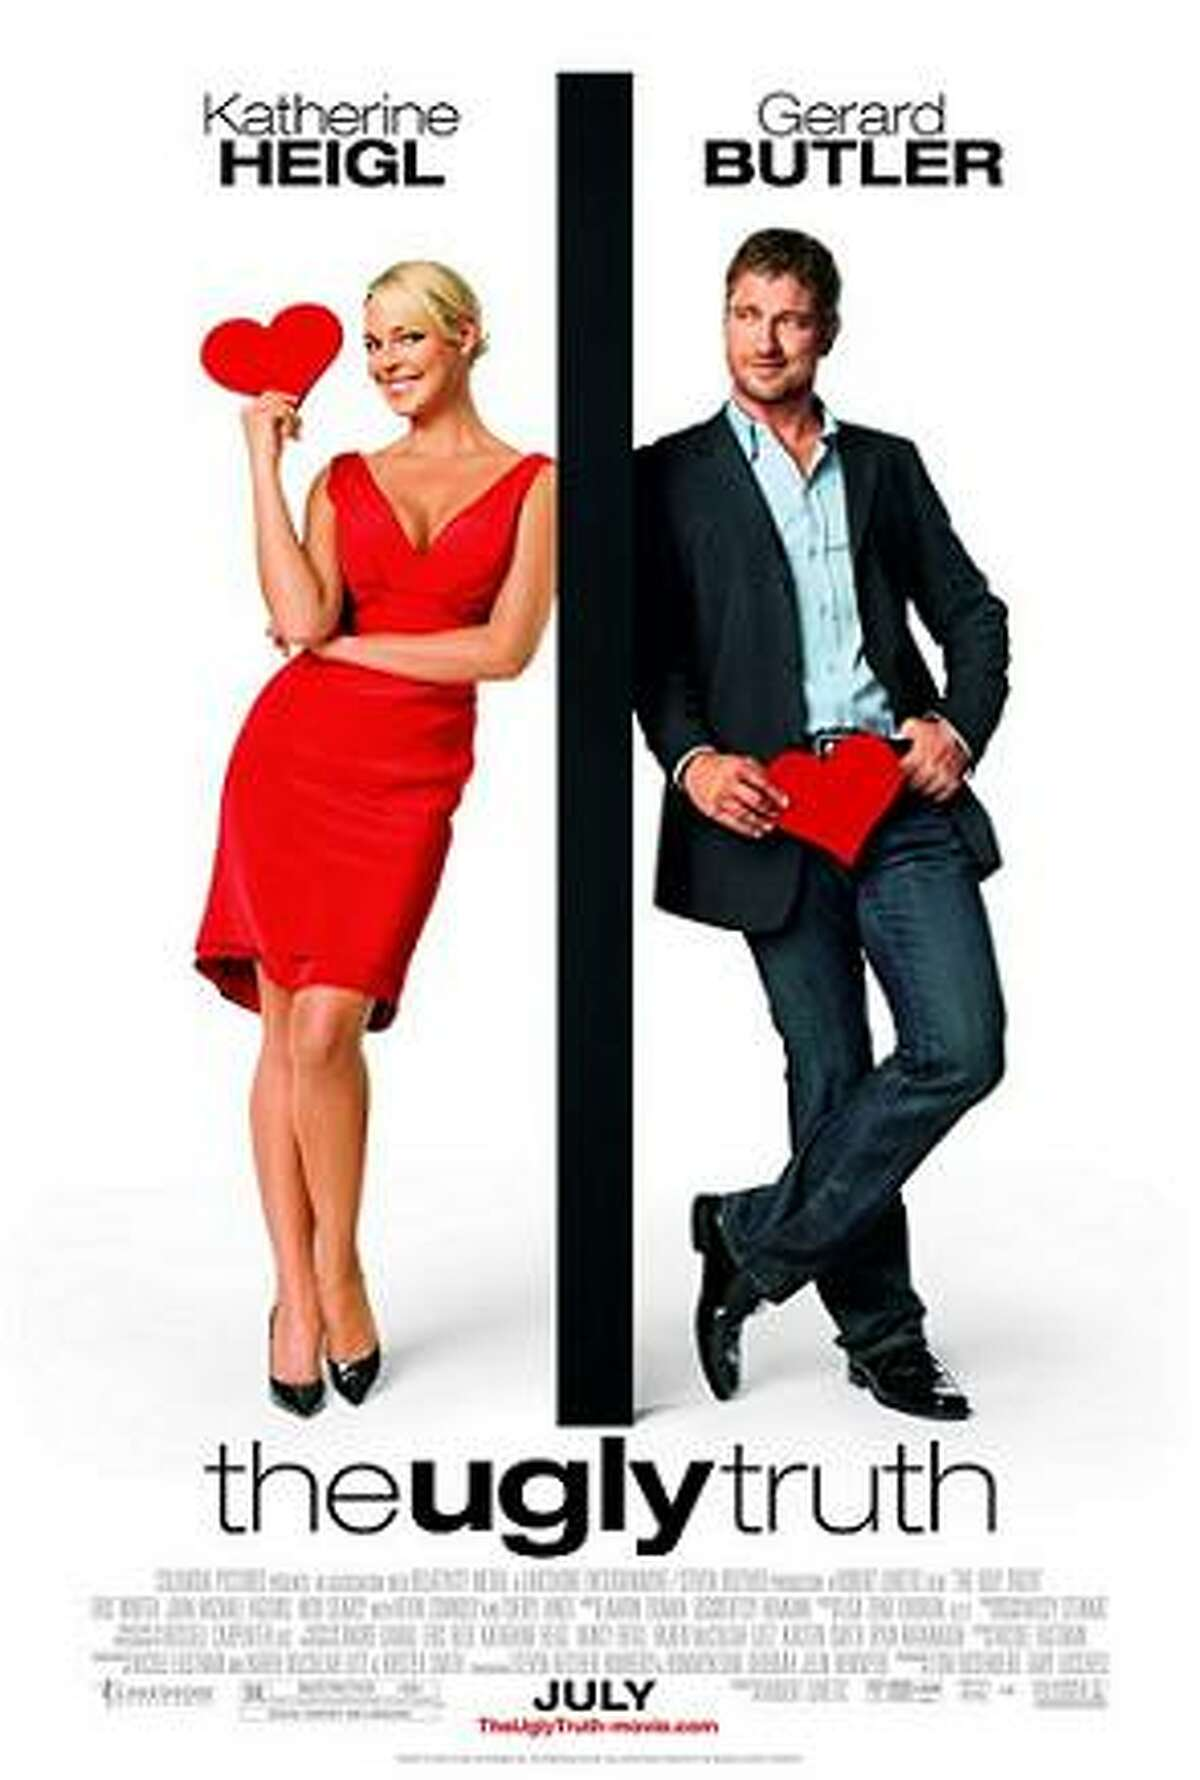 The Ugly Truth (2009) Starring: Katherine Heigl, Gerard Butler, Eric Winter Audience Score: 60 Tomatometer Score: 13 Source: Rotten Tomatoes